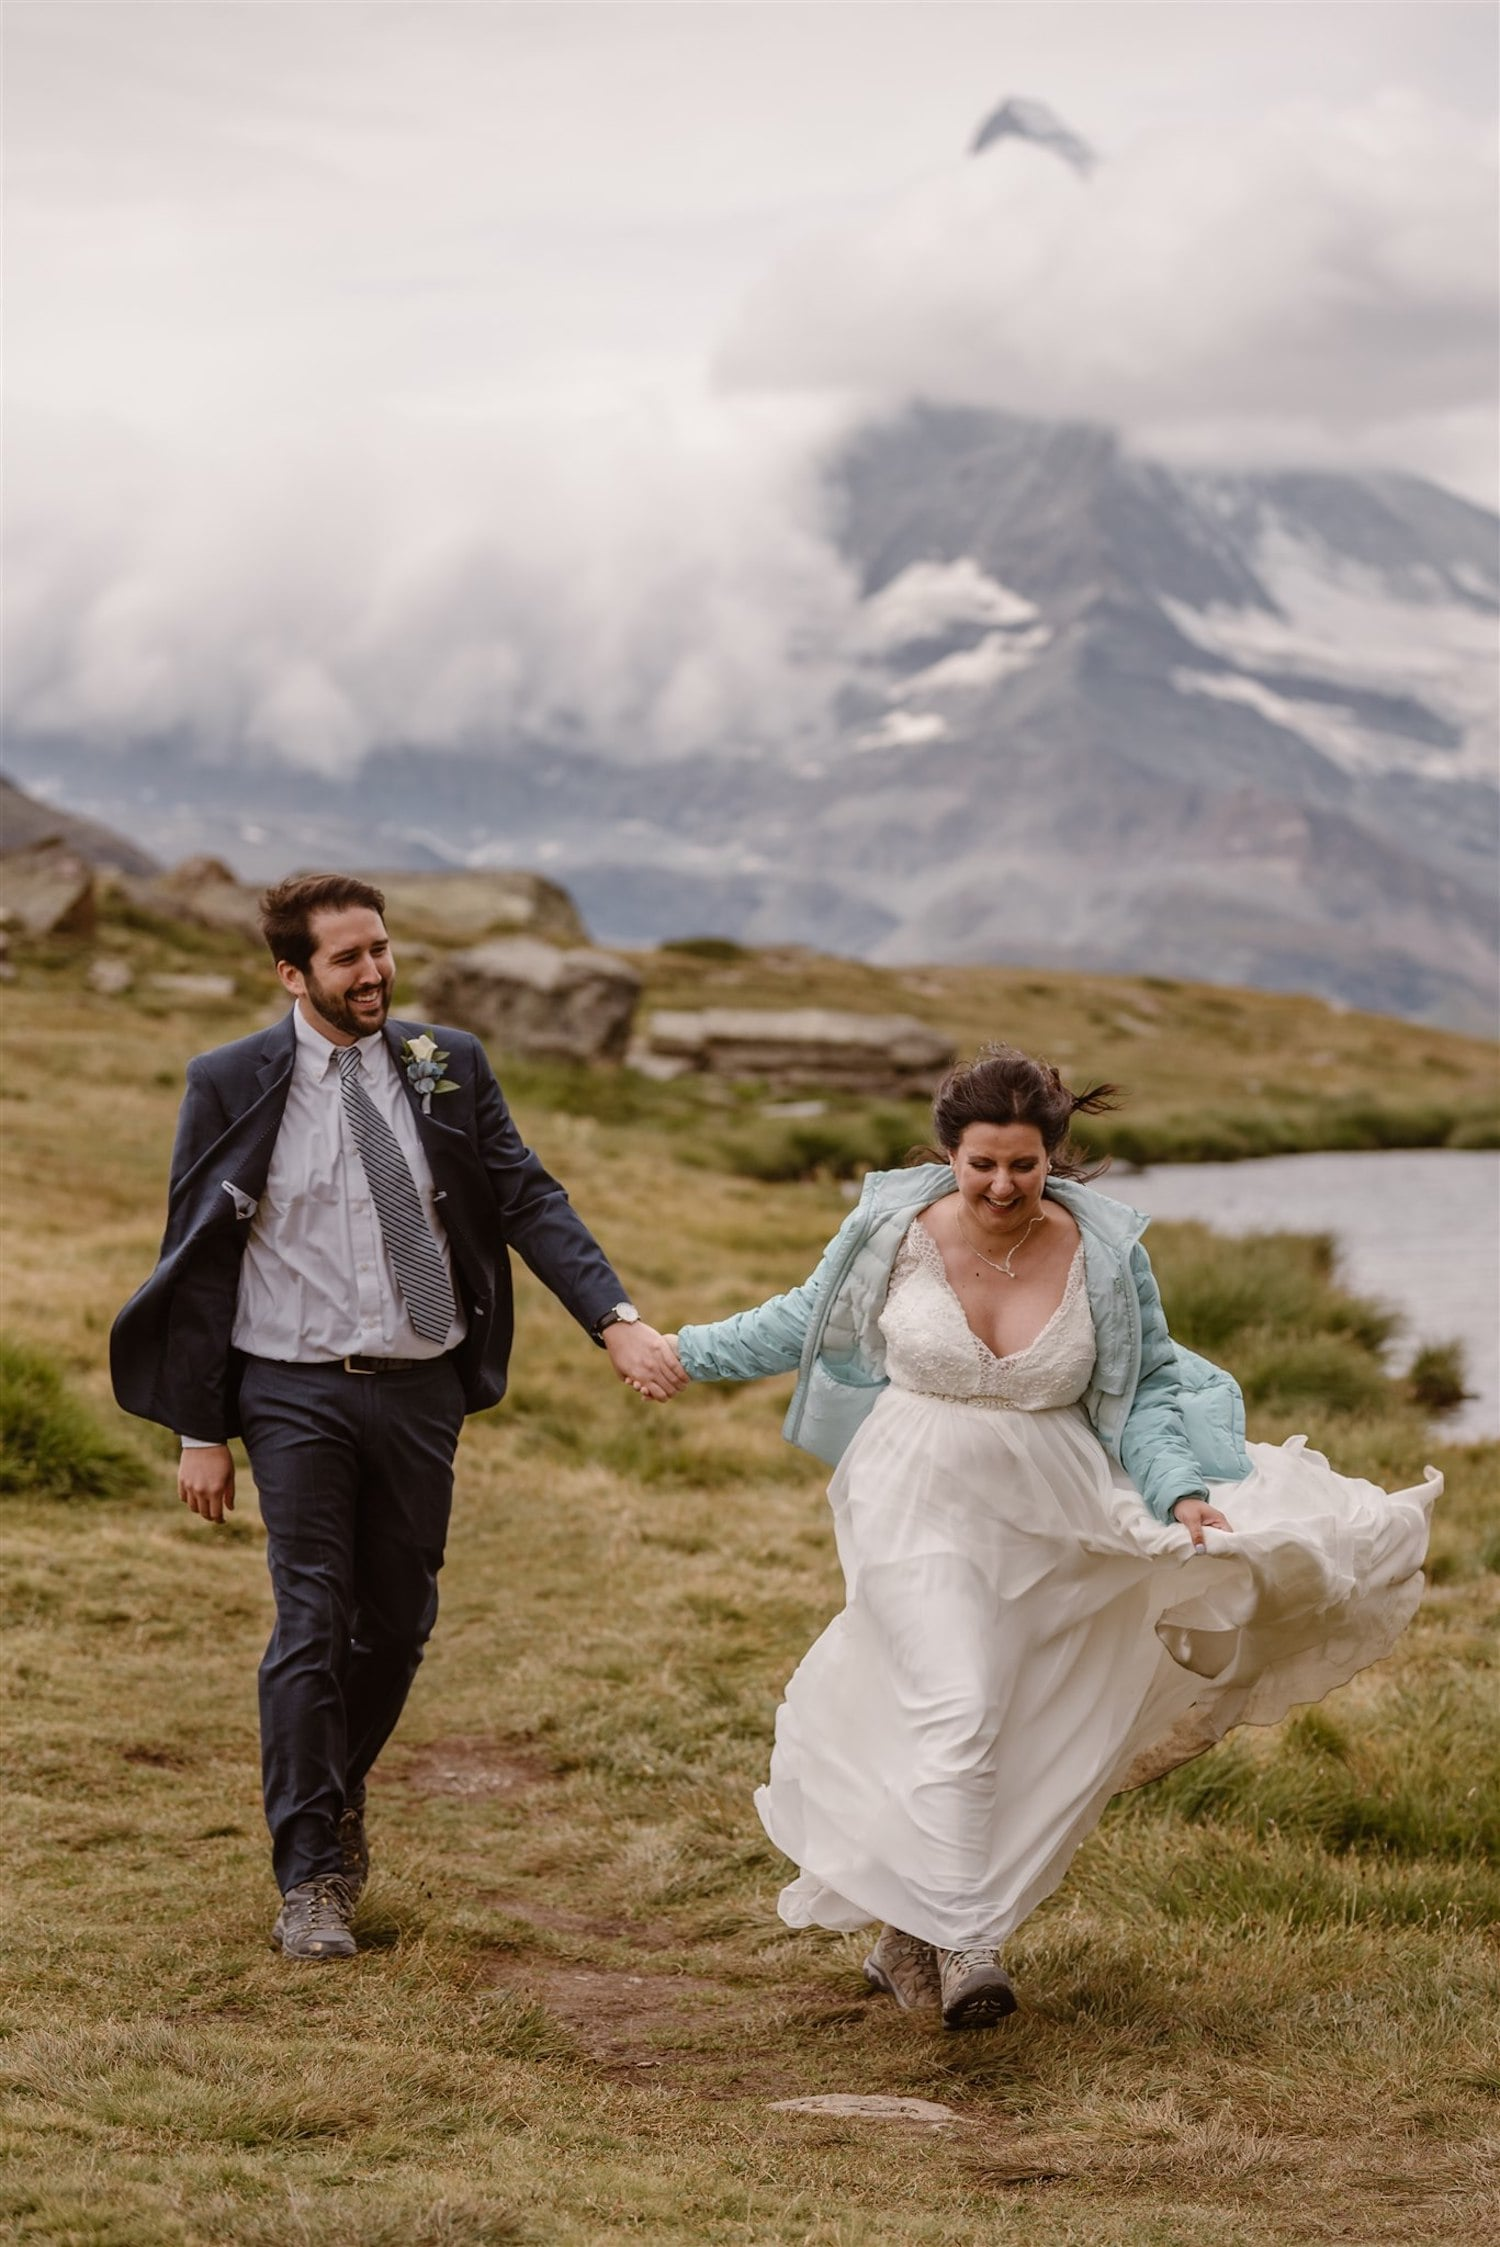 Bride and groom happily running in front of the Matterhorn